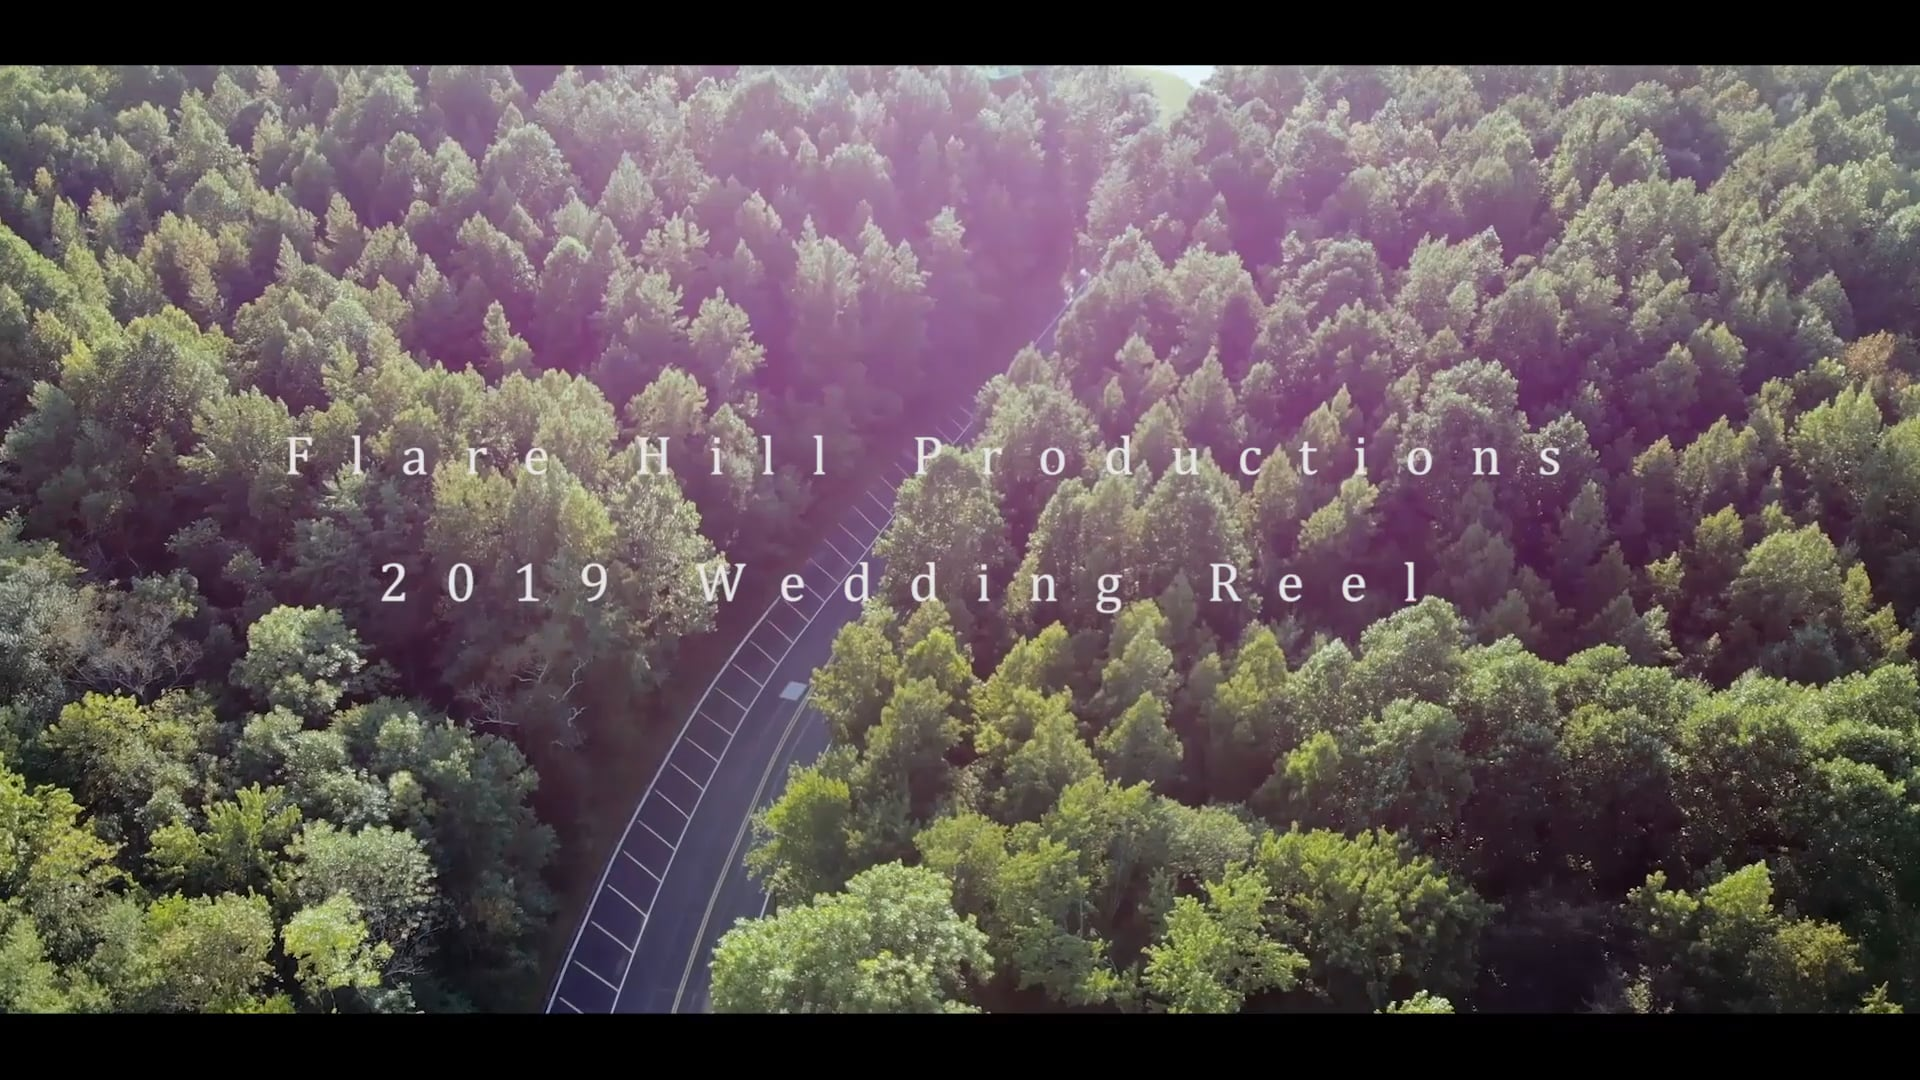 2019 Flare Hill Productions Wedding Reel